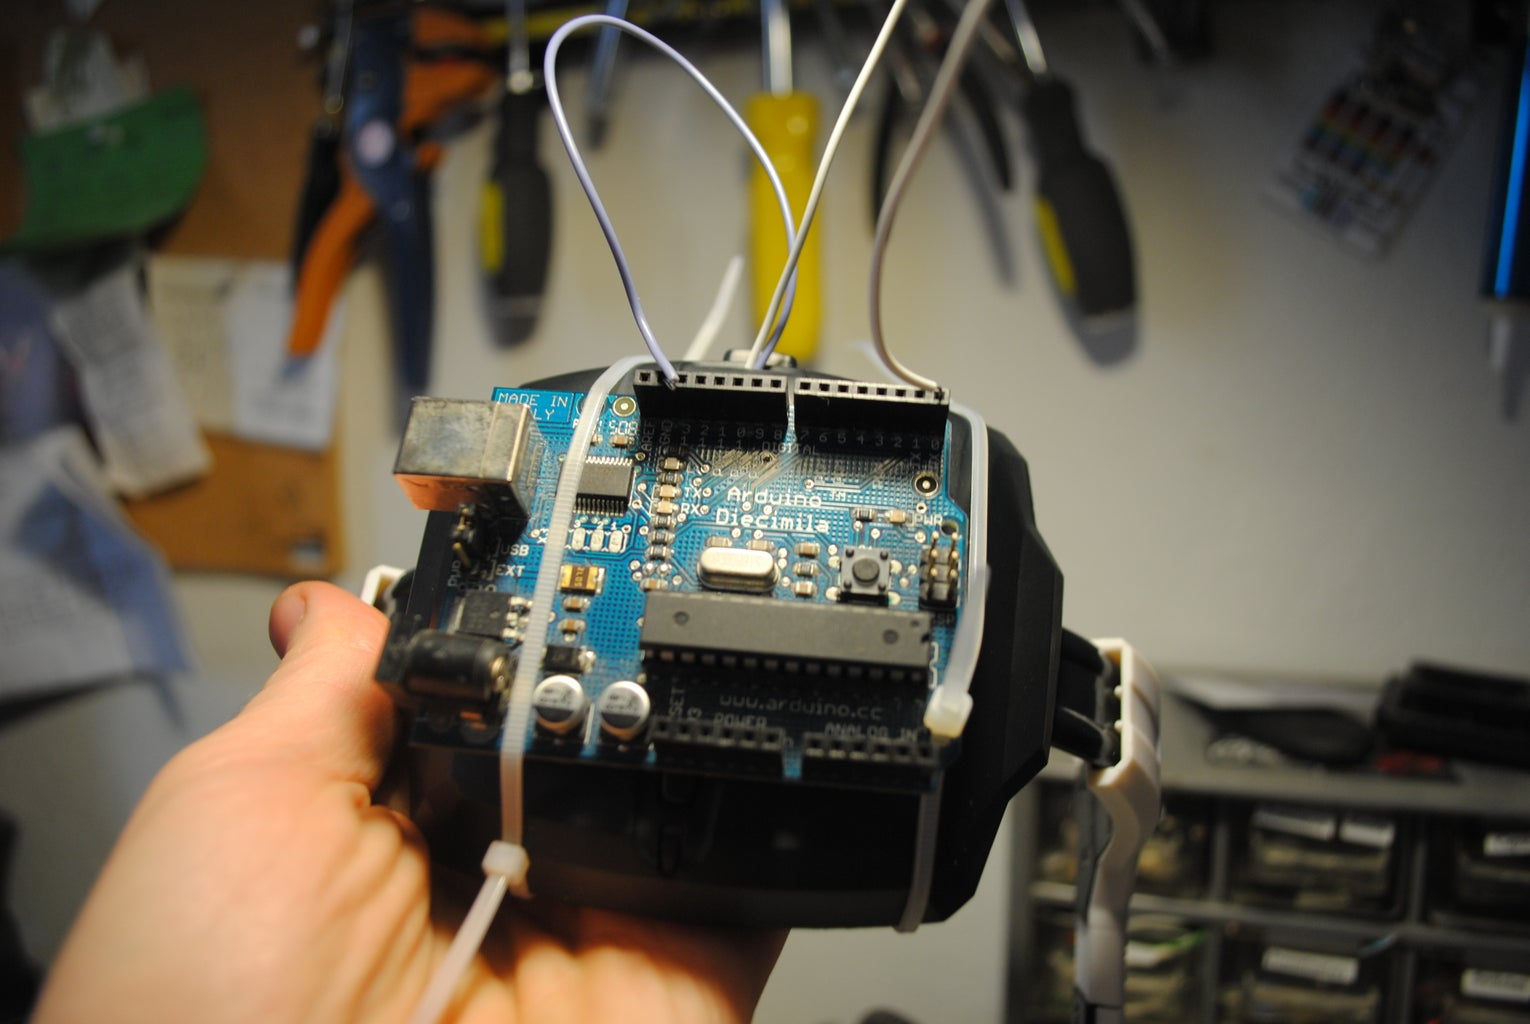 Hooking Up to the Arduino